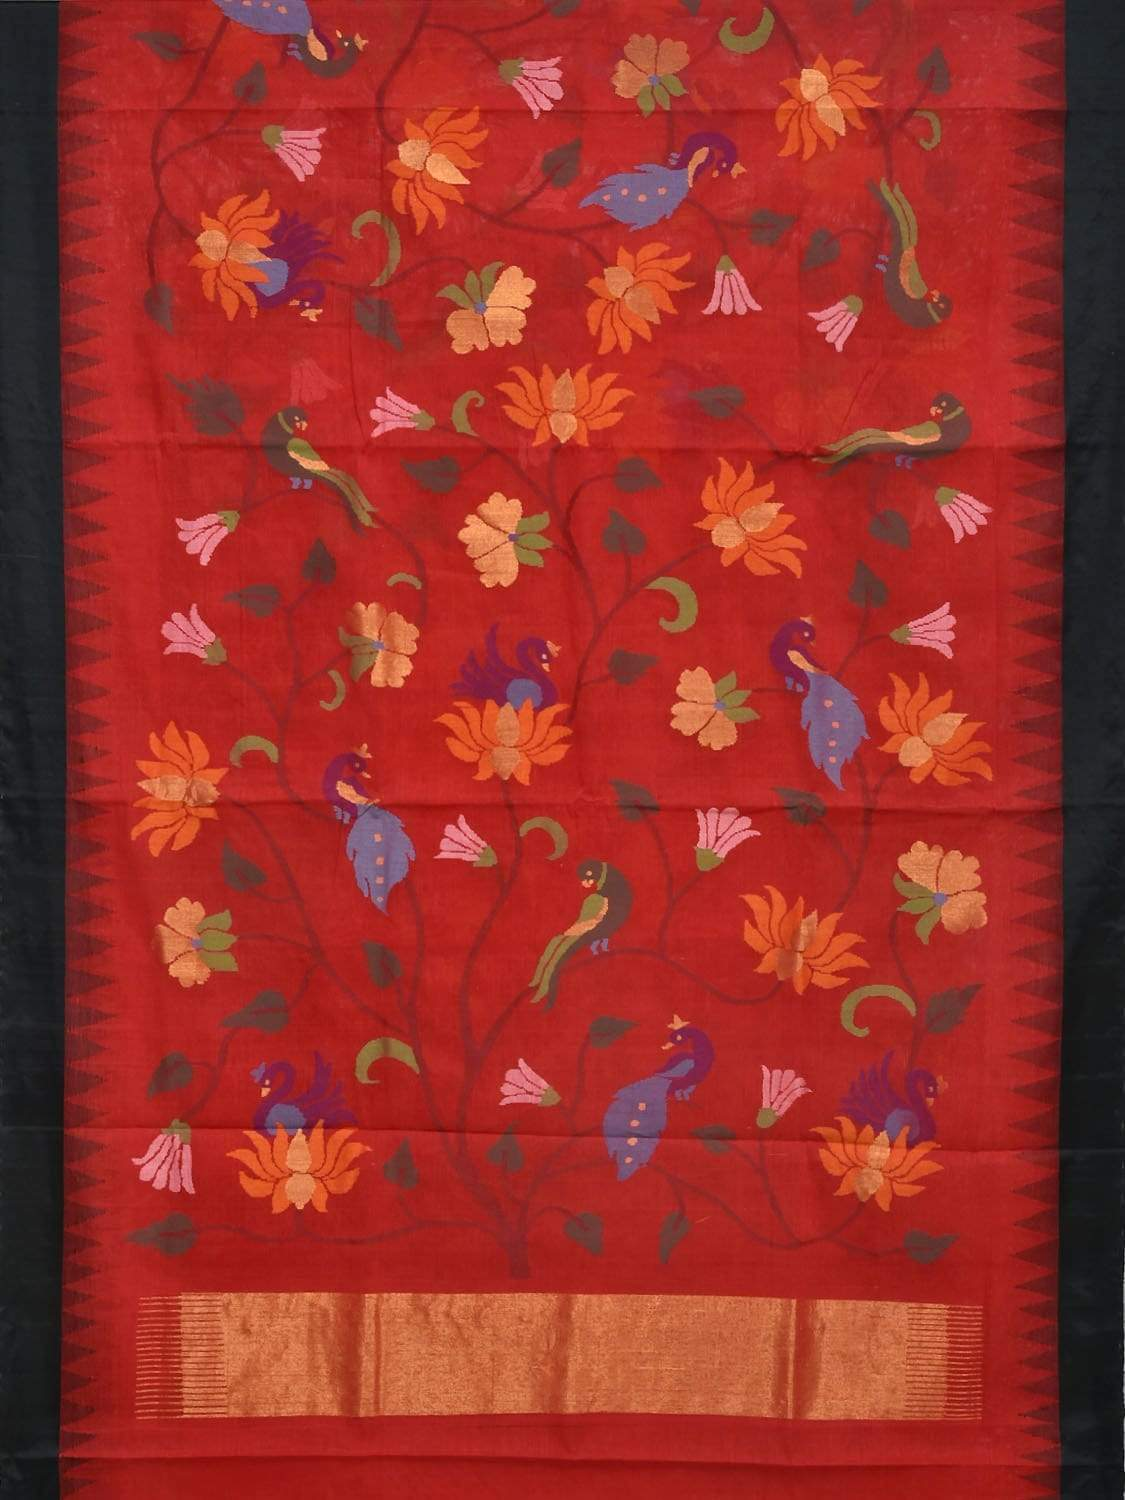 Red Khadi Cotton Handloom Saree with All Over Flowers and Birds Design Kh0460